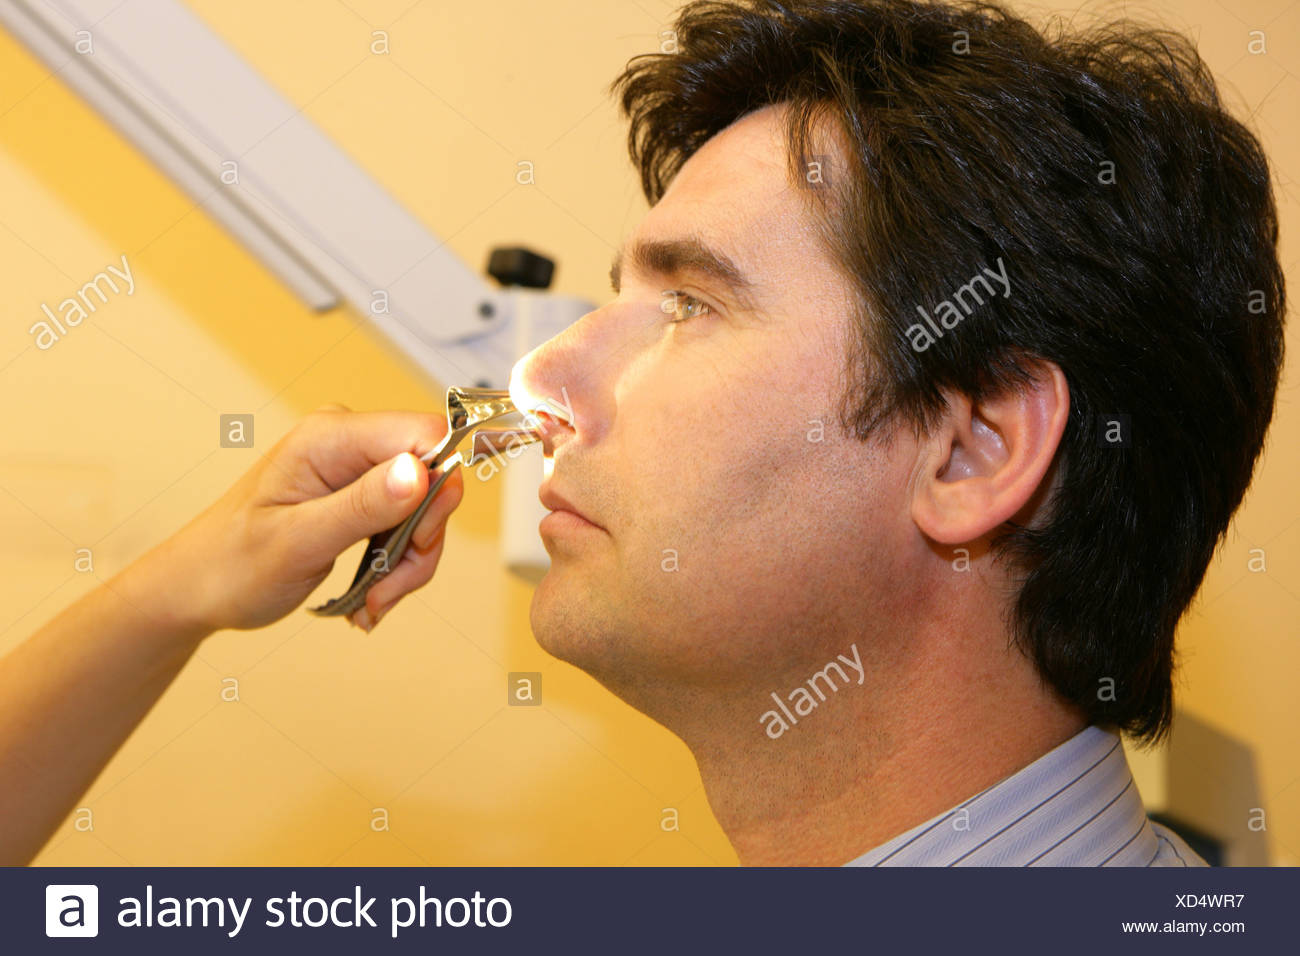 ENT physician man examination - Stock Image